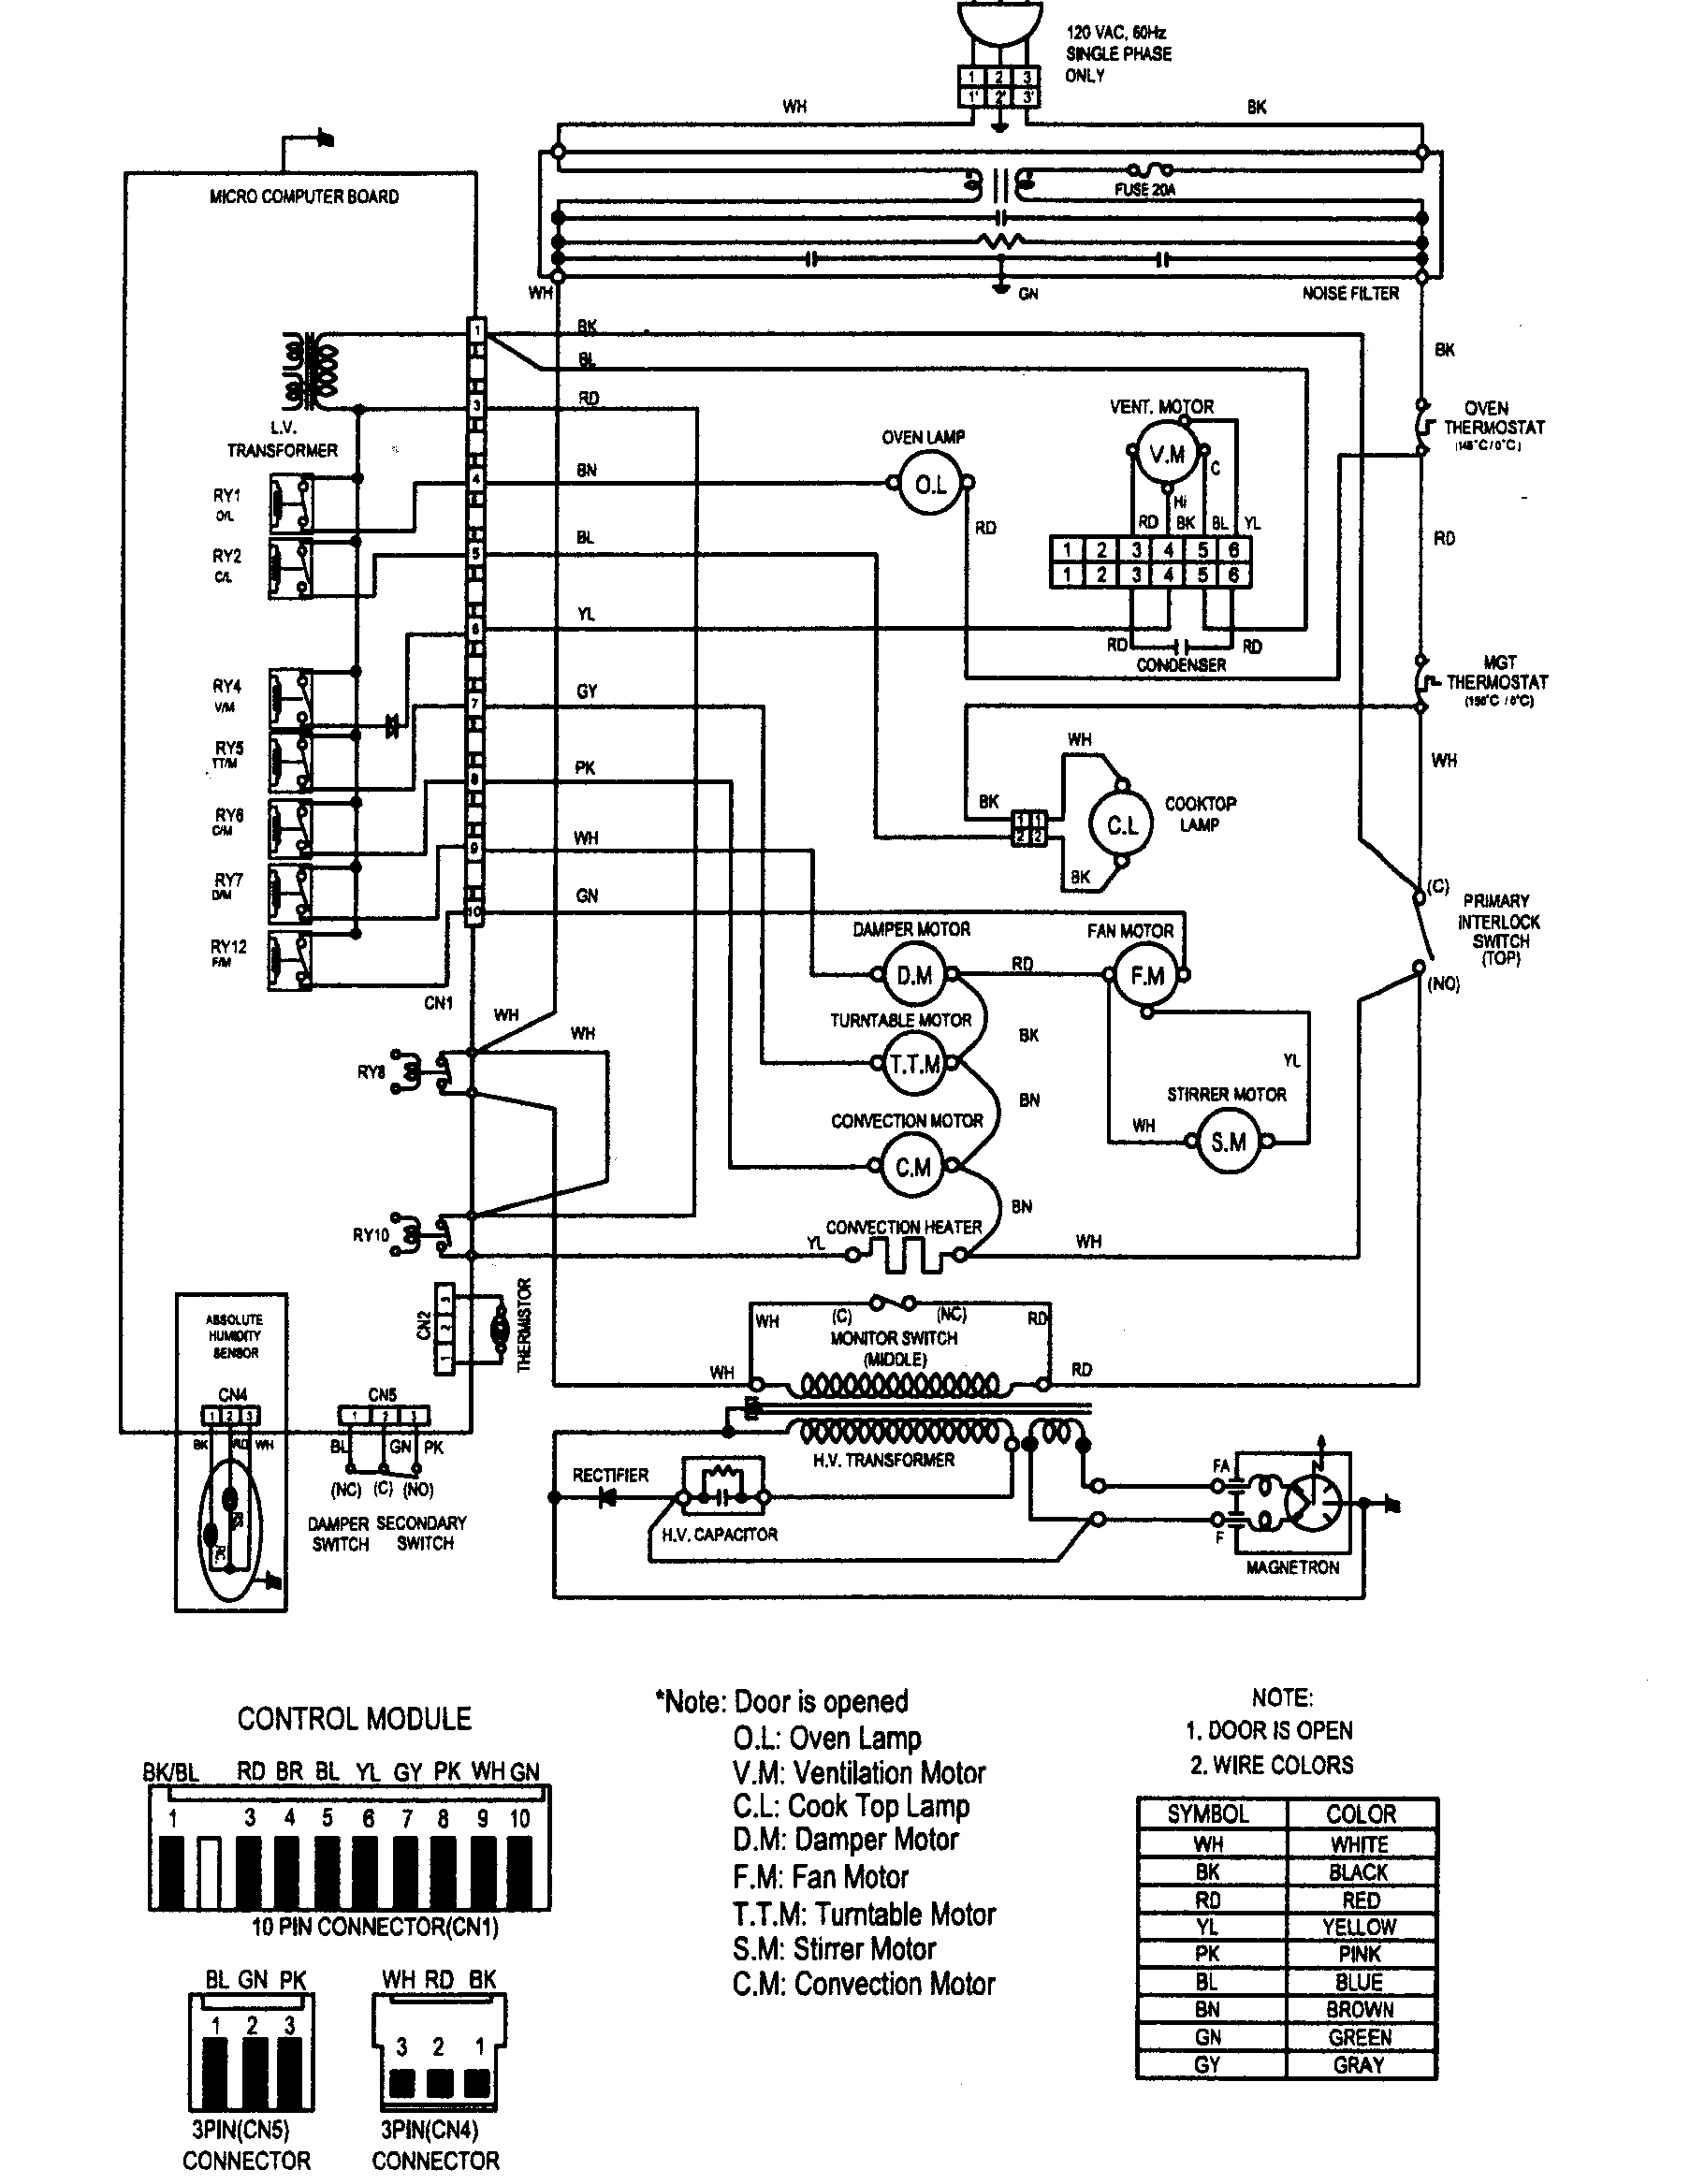 blodgett dfg 100 wiring diagram Collection-kenmore elite wiring diagram Download Kenmore Wiring Diagram 16 a DOWNLOAD Wiring Diagram 19-m